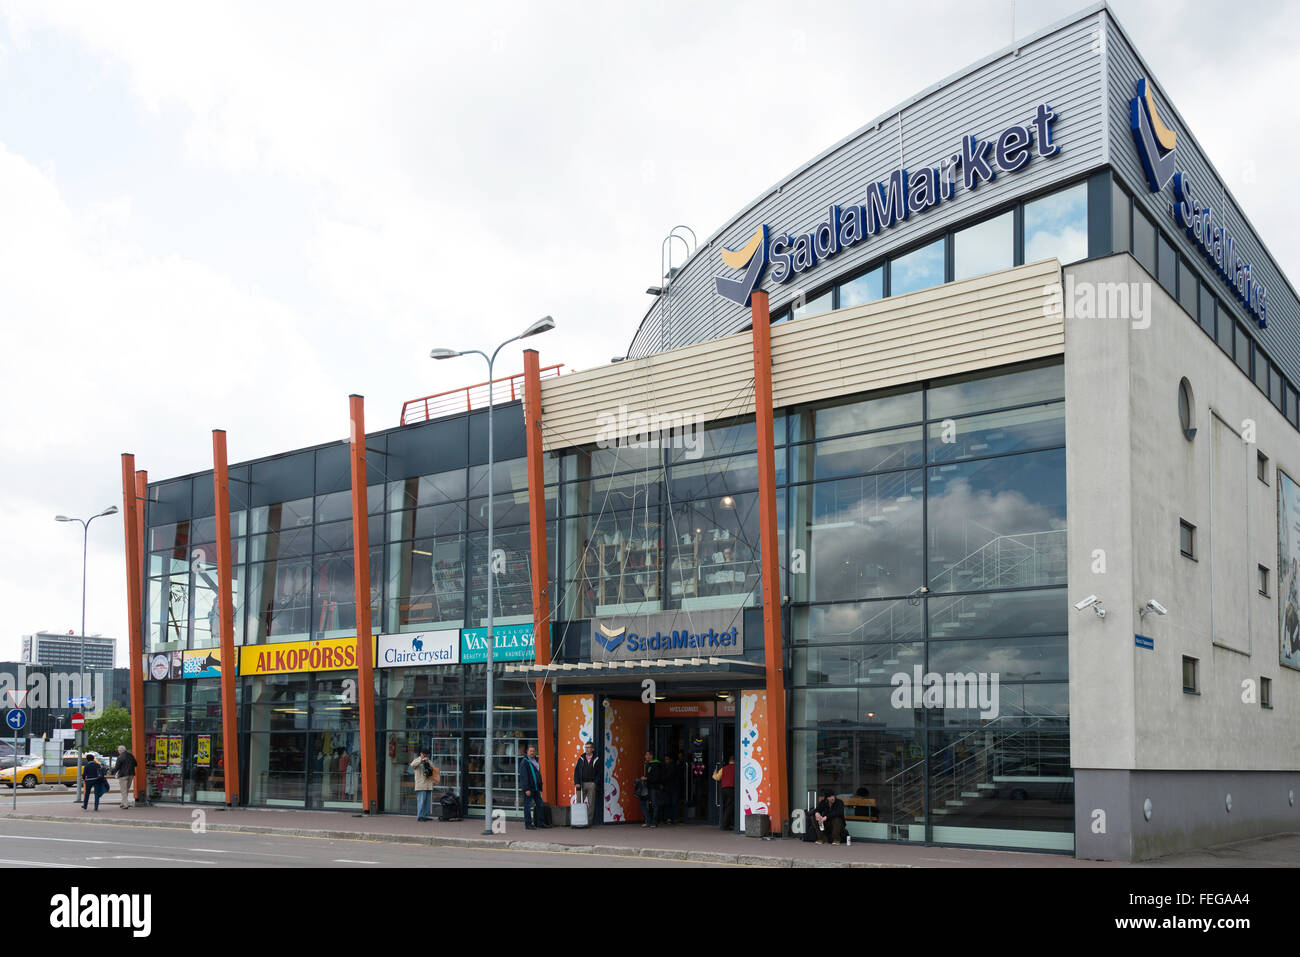 SadaMarket Shopping Centre, Sadama, Tallinn, Harju County, Republic of Estonia - Stock Image